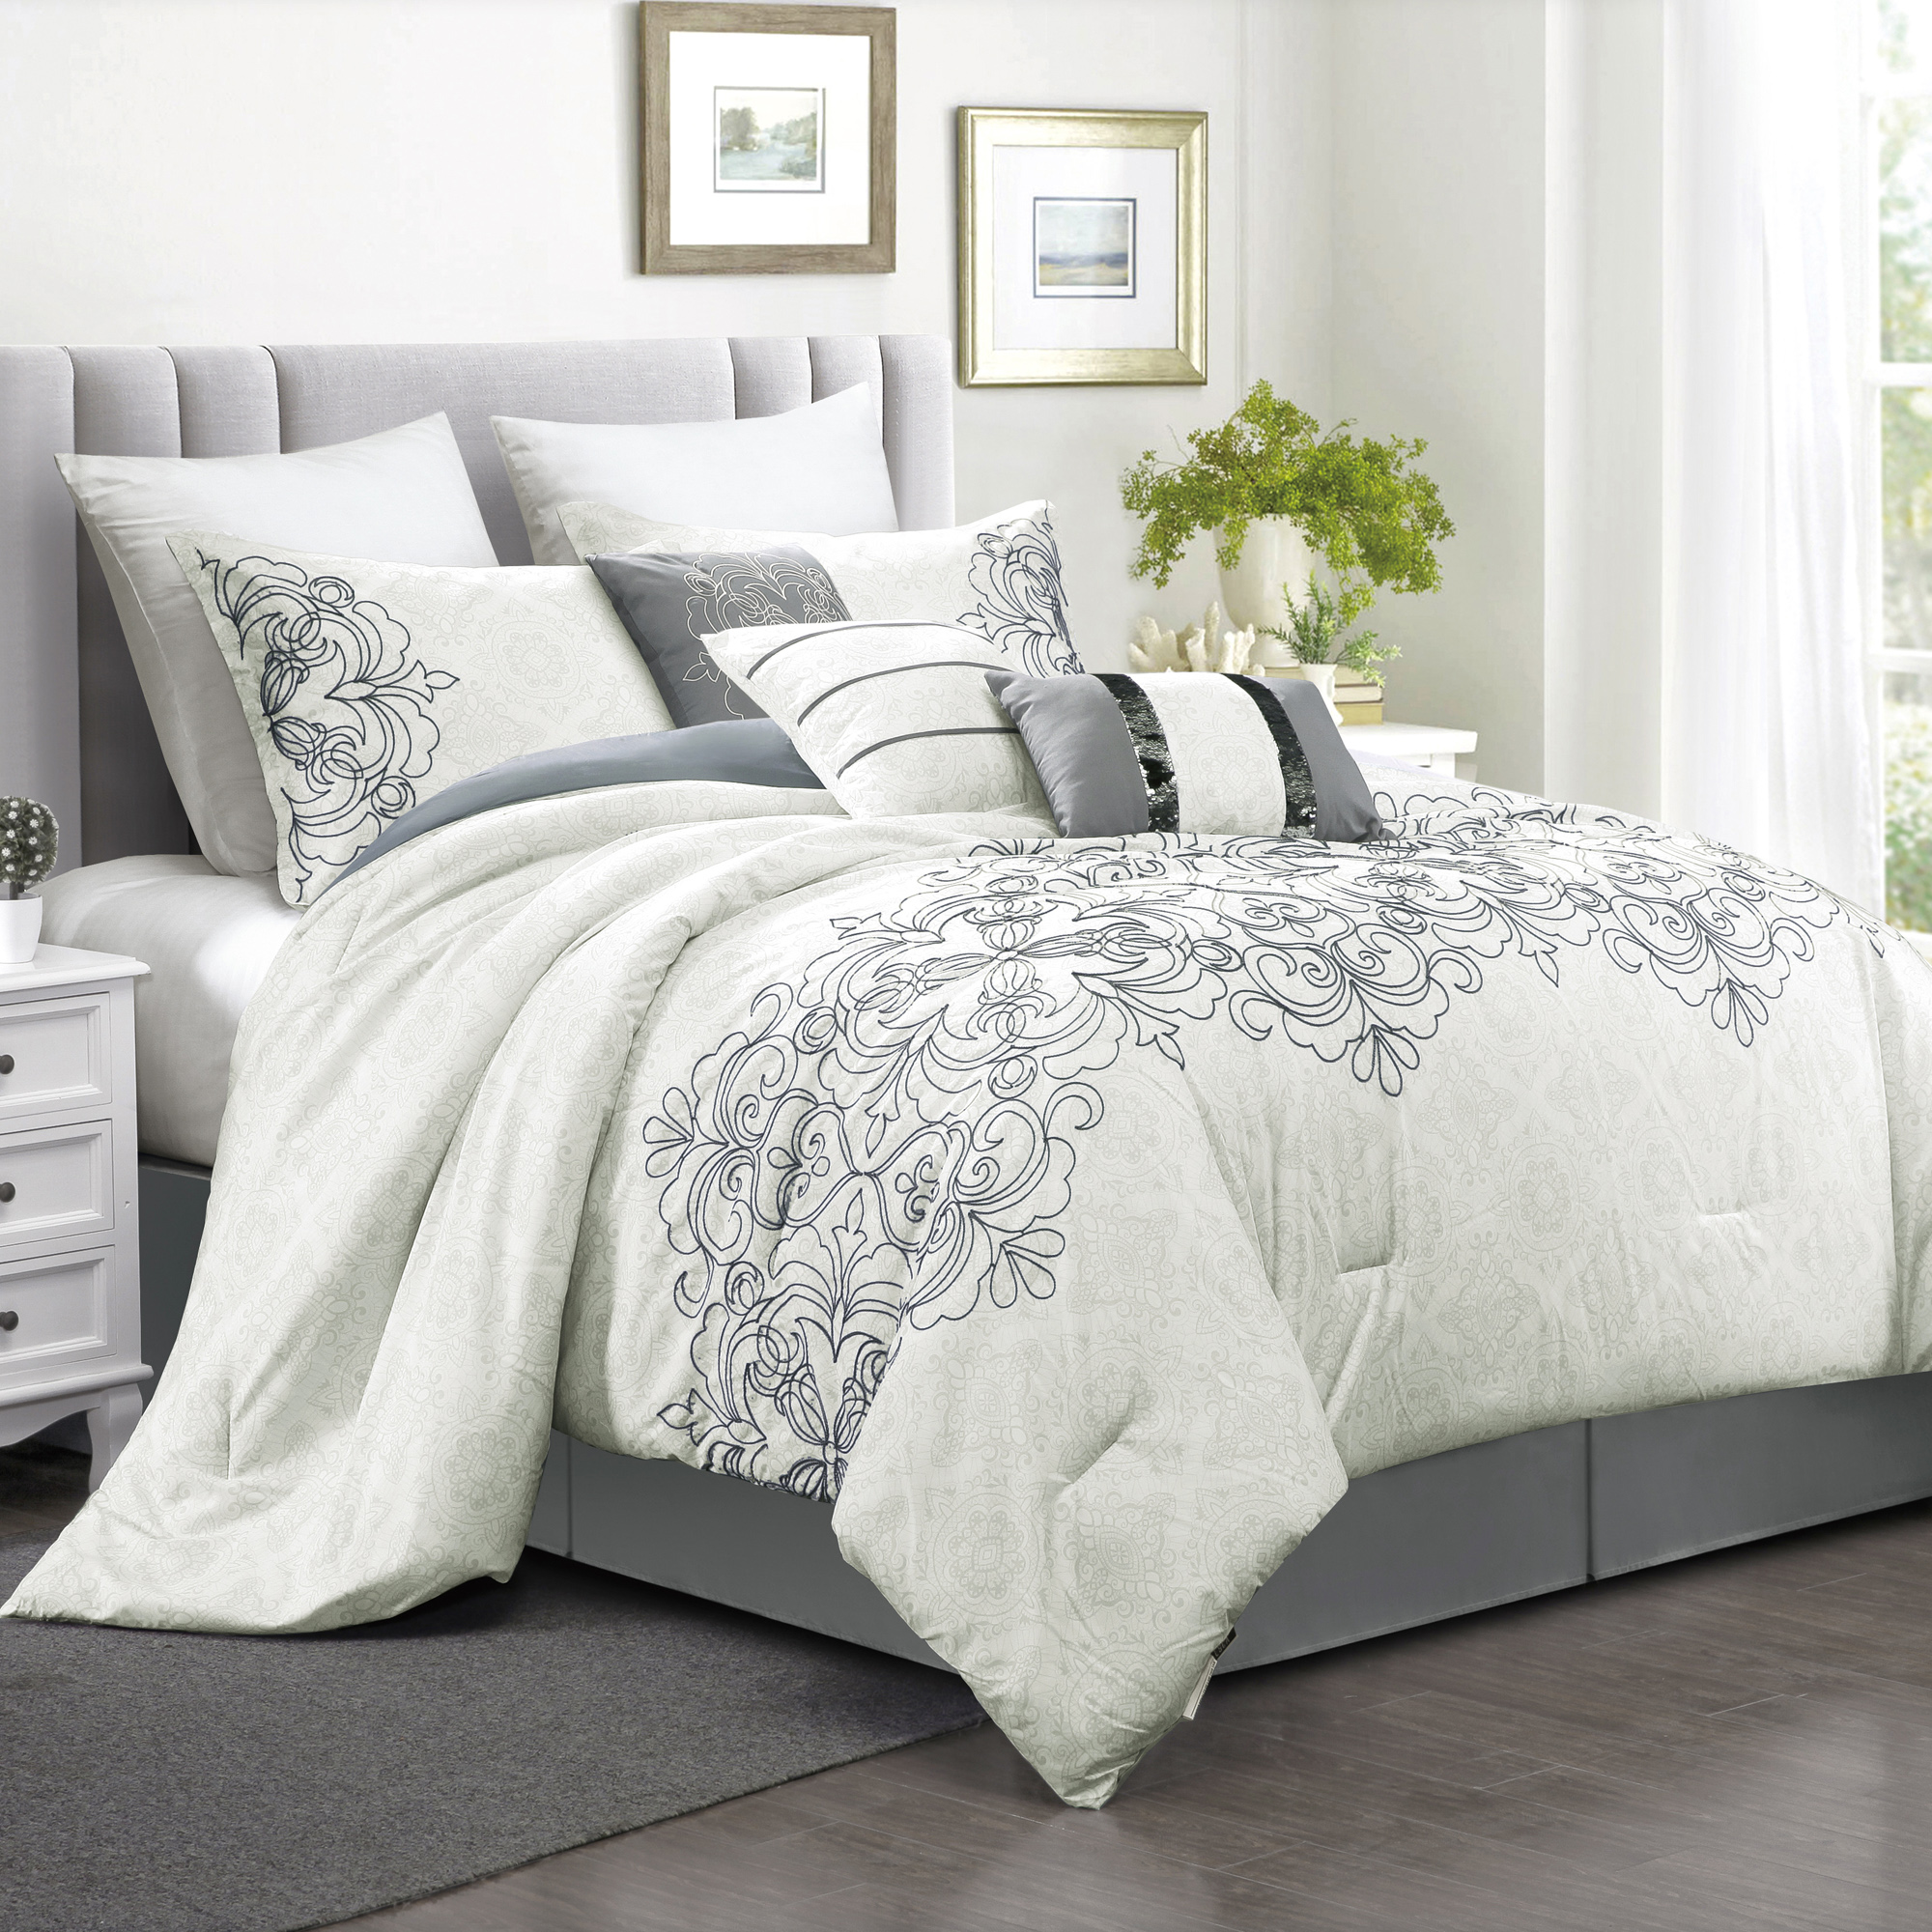 7pc Comforter Set bed-in-a-bag Queen King Cal King Size Luxury Stripe Soft